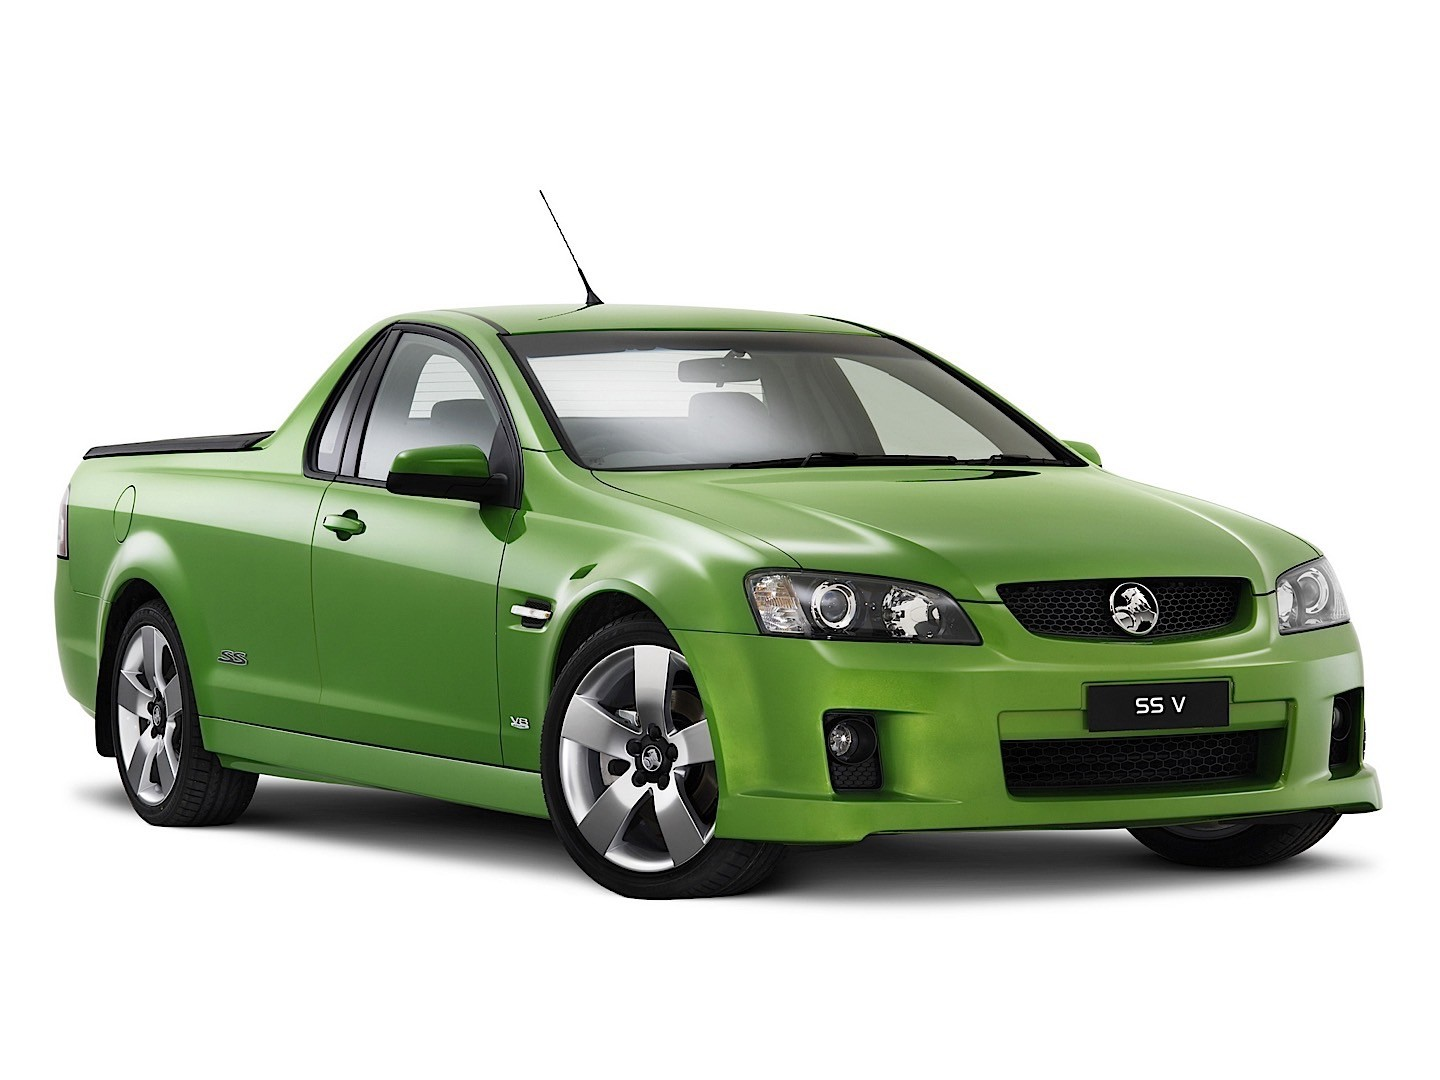 Holden Ute 2007 2008 2009 2010 2011 2012 2013 2014 2015 2016 Autoevolution